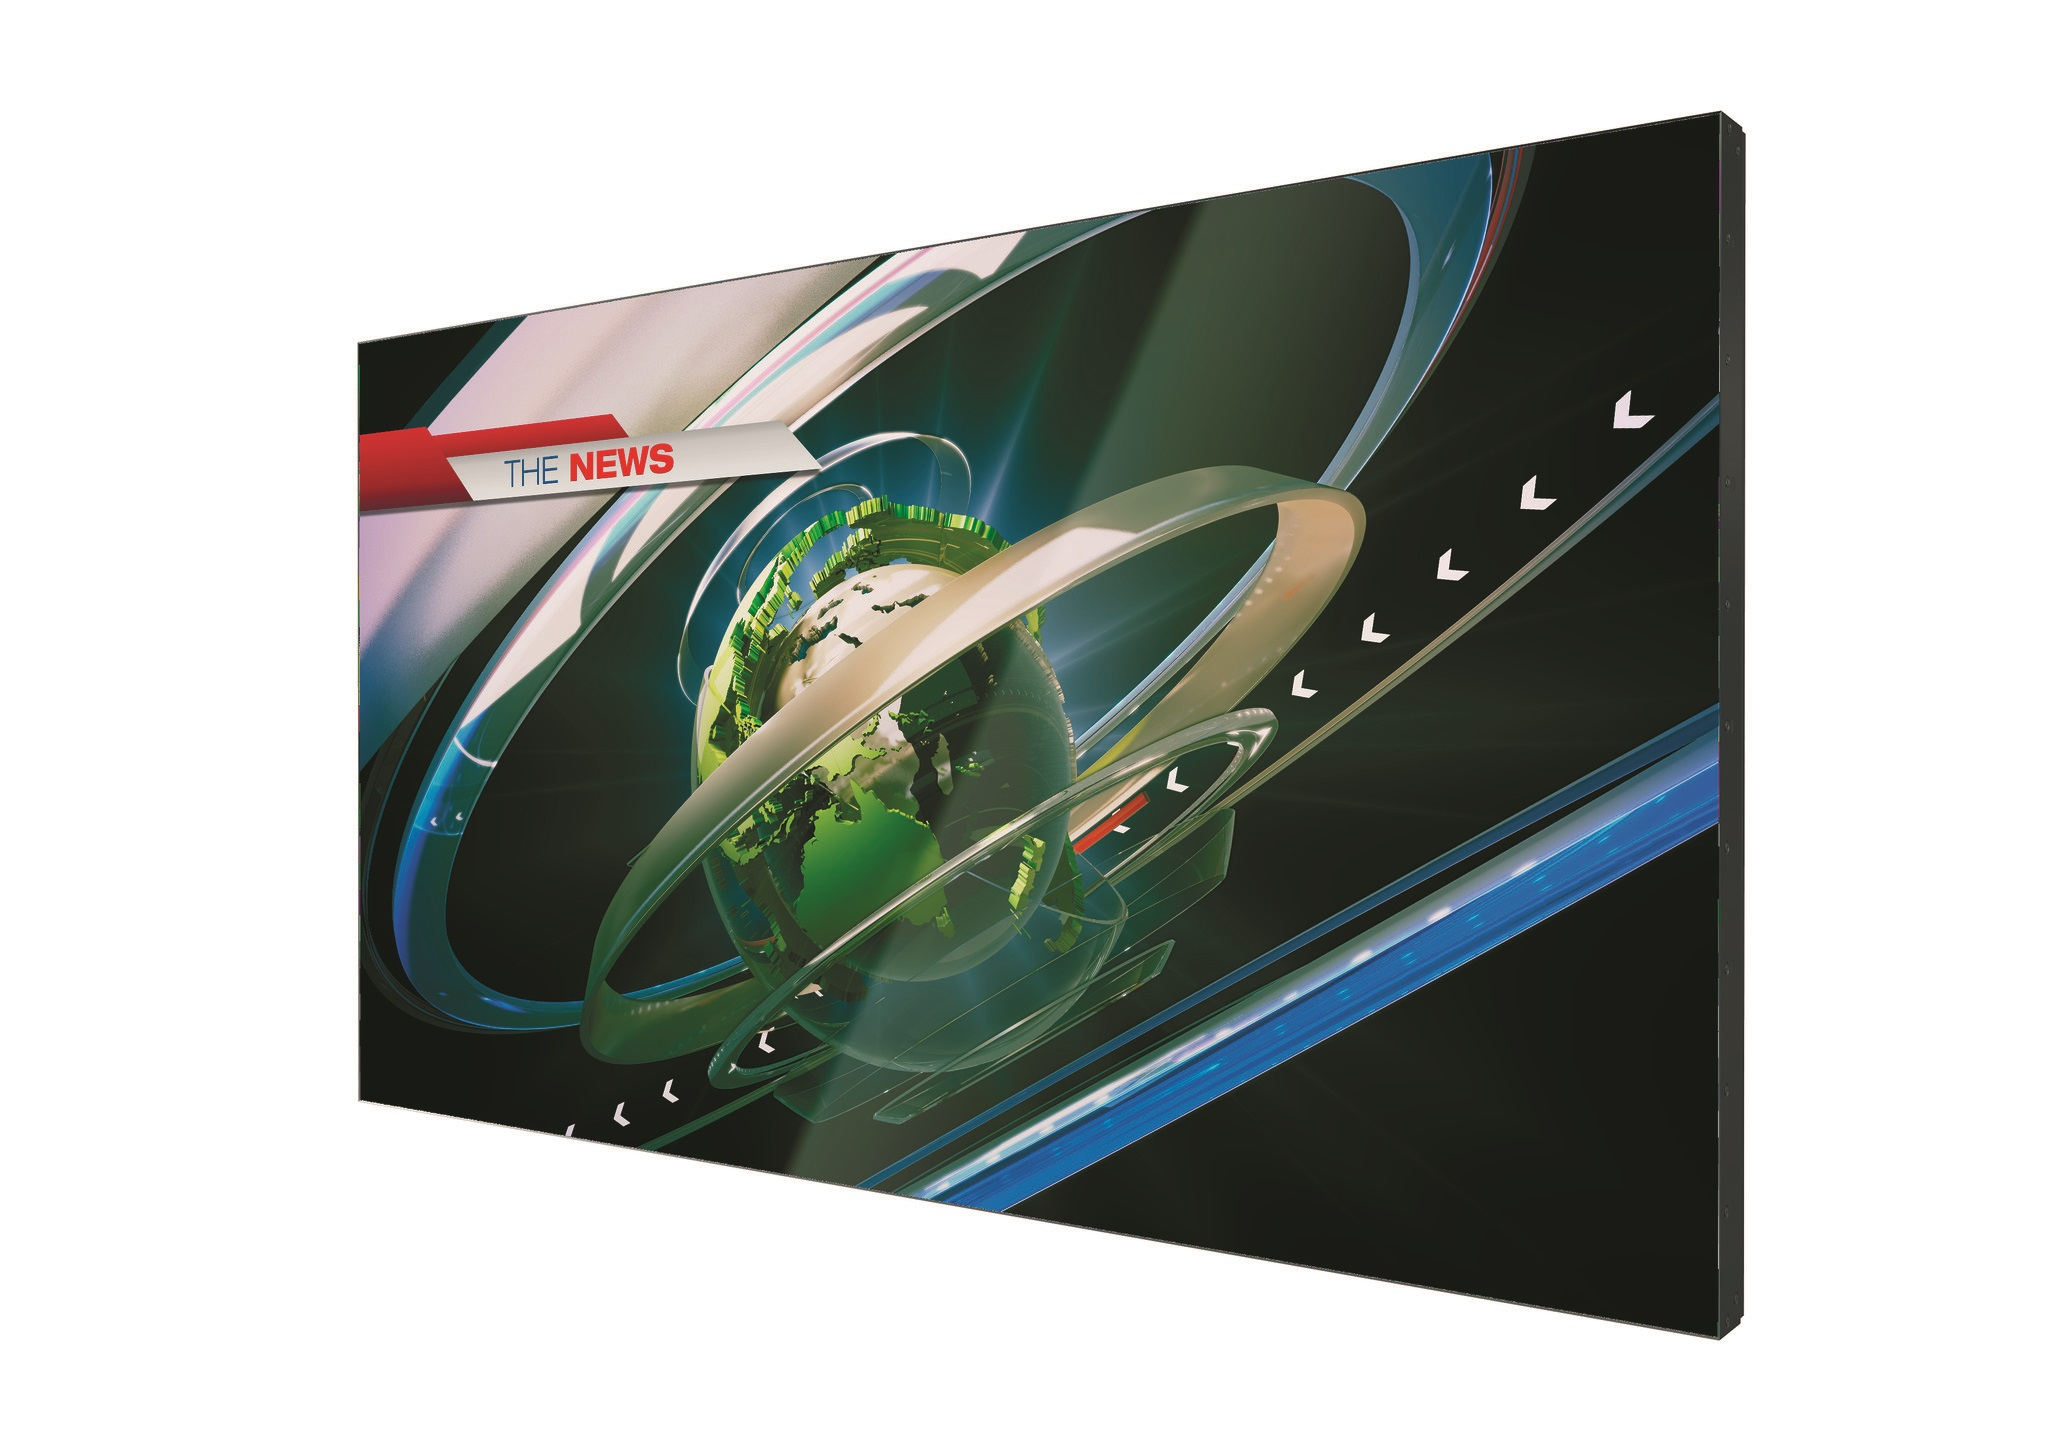 christie-fhd553-extreme-panel